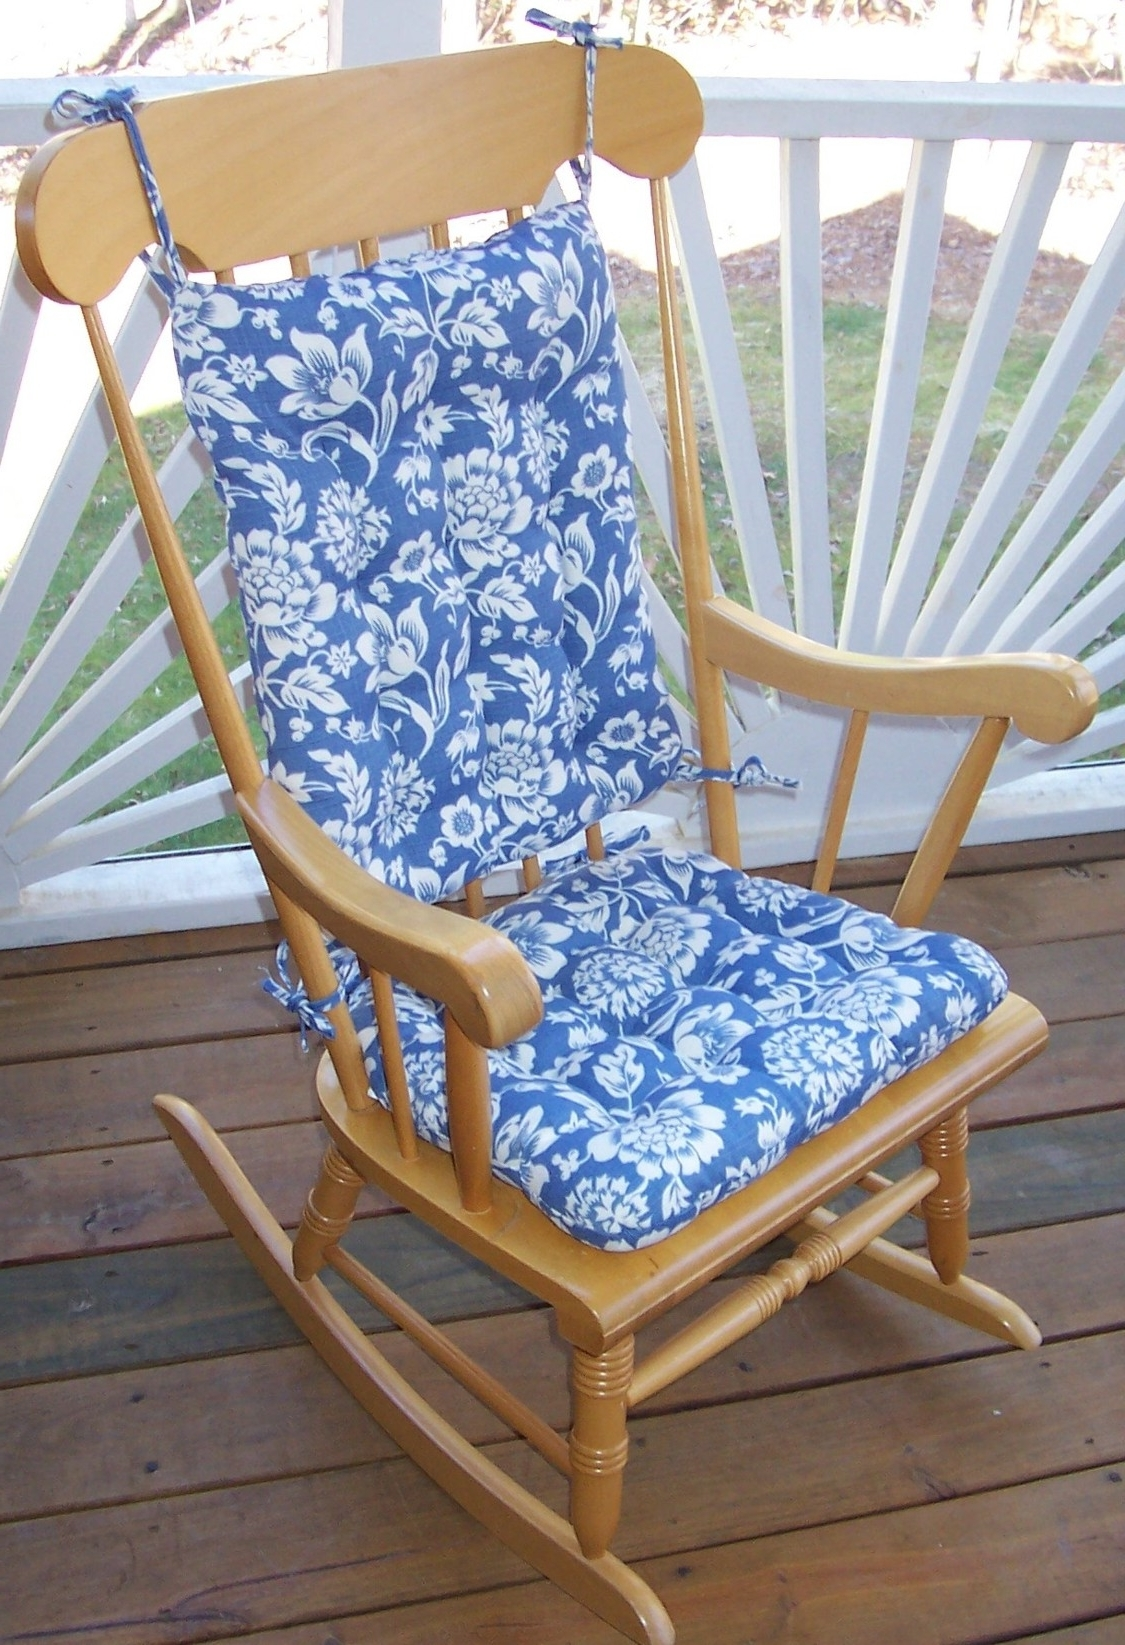 Widely Used Yellow Outdoor Rocking Chair Cushions – Chair Design Ideas Regarding Yellow Outdoor Rocking Chairs (View 3 of 20)